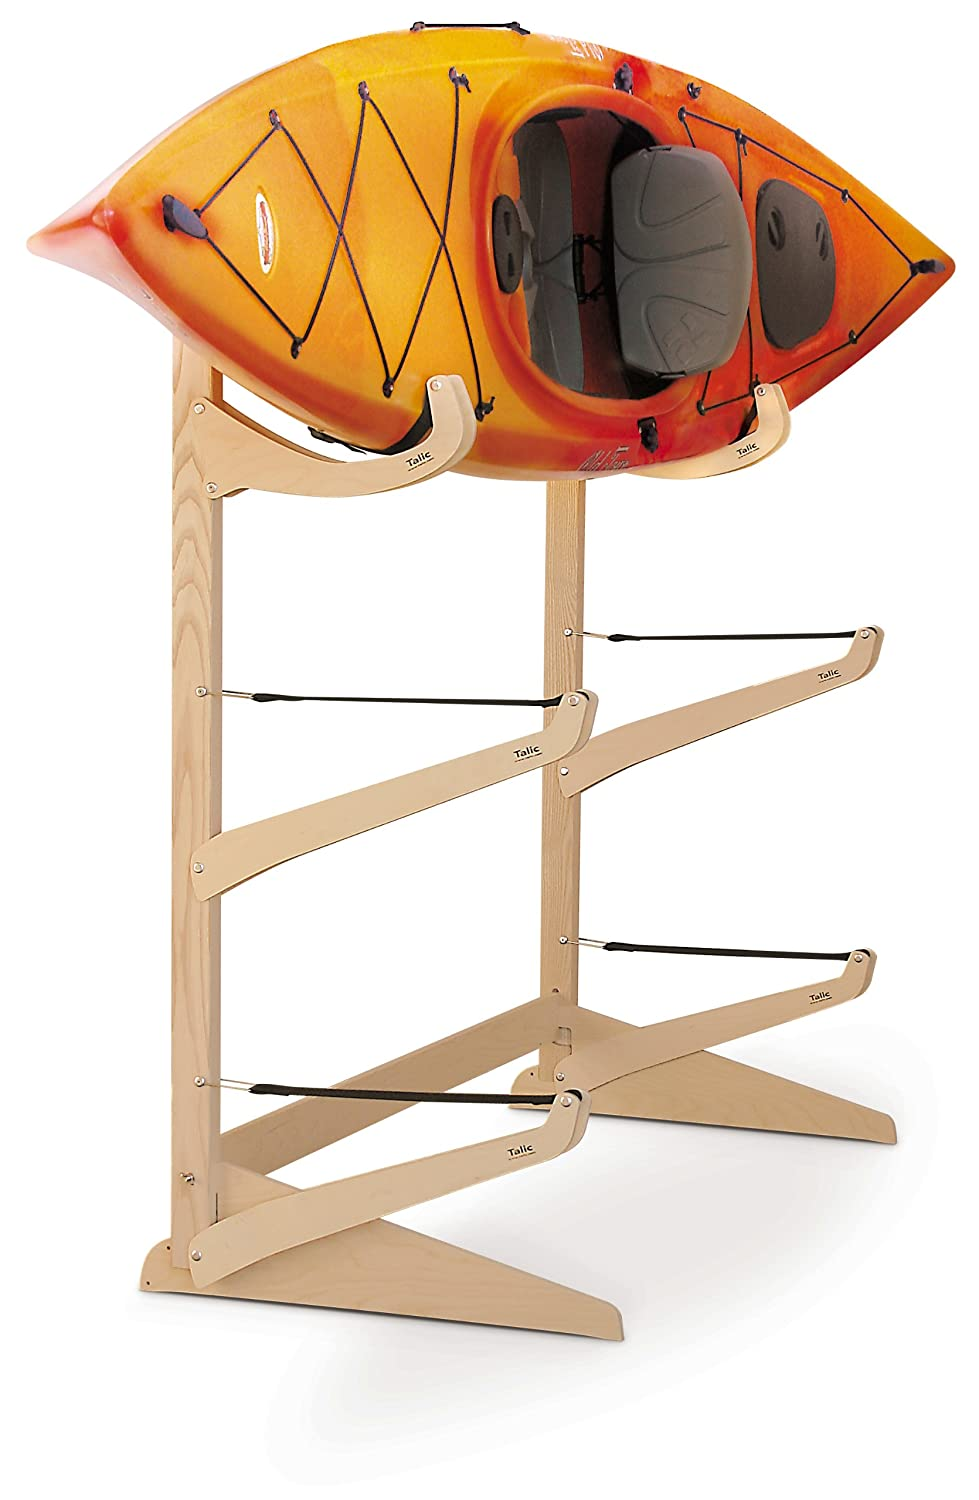 Merveilleux Amazon.com : Talic Owasco   3 Boat Freestanding Kayak Storage Rack : Sports  U0026 Outdoors